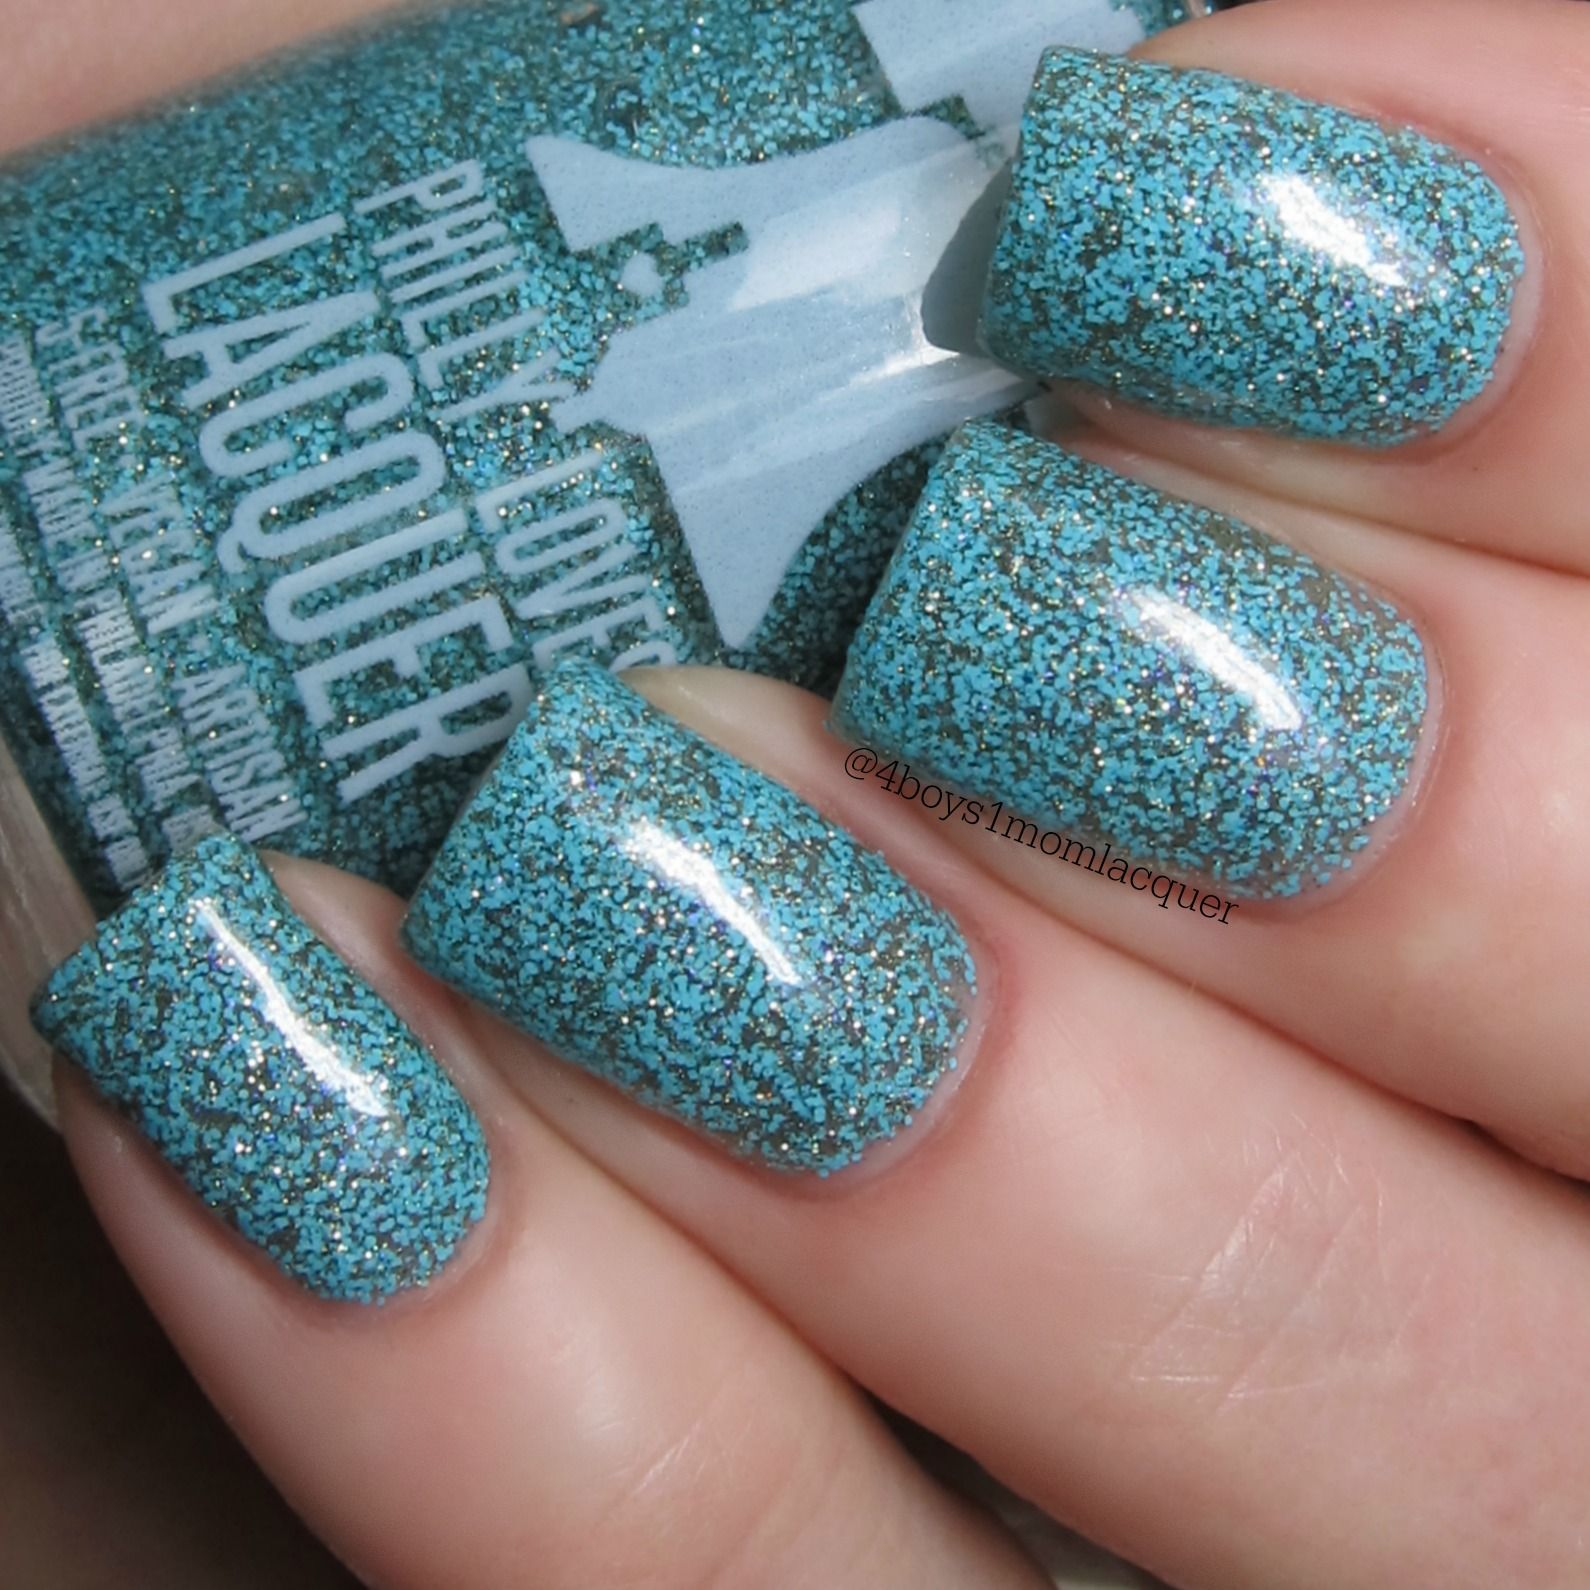 Brand: Philly Loves Lacquer // Collection: Springtime in Philly (Spring 2015) // Color:  Schuylkill Banks // Blog: Jennifer's Blog and Review